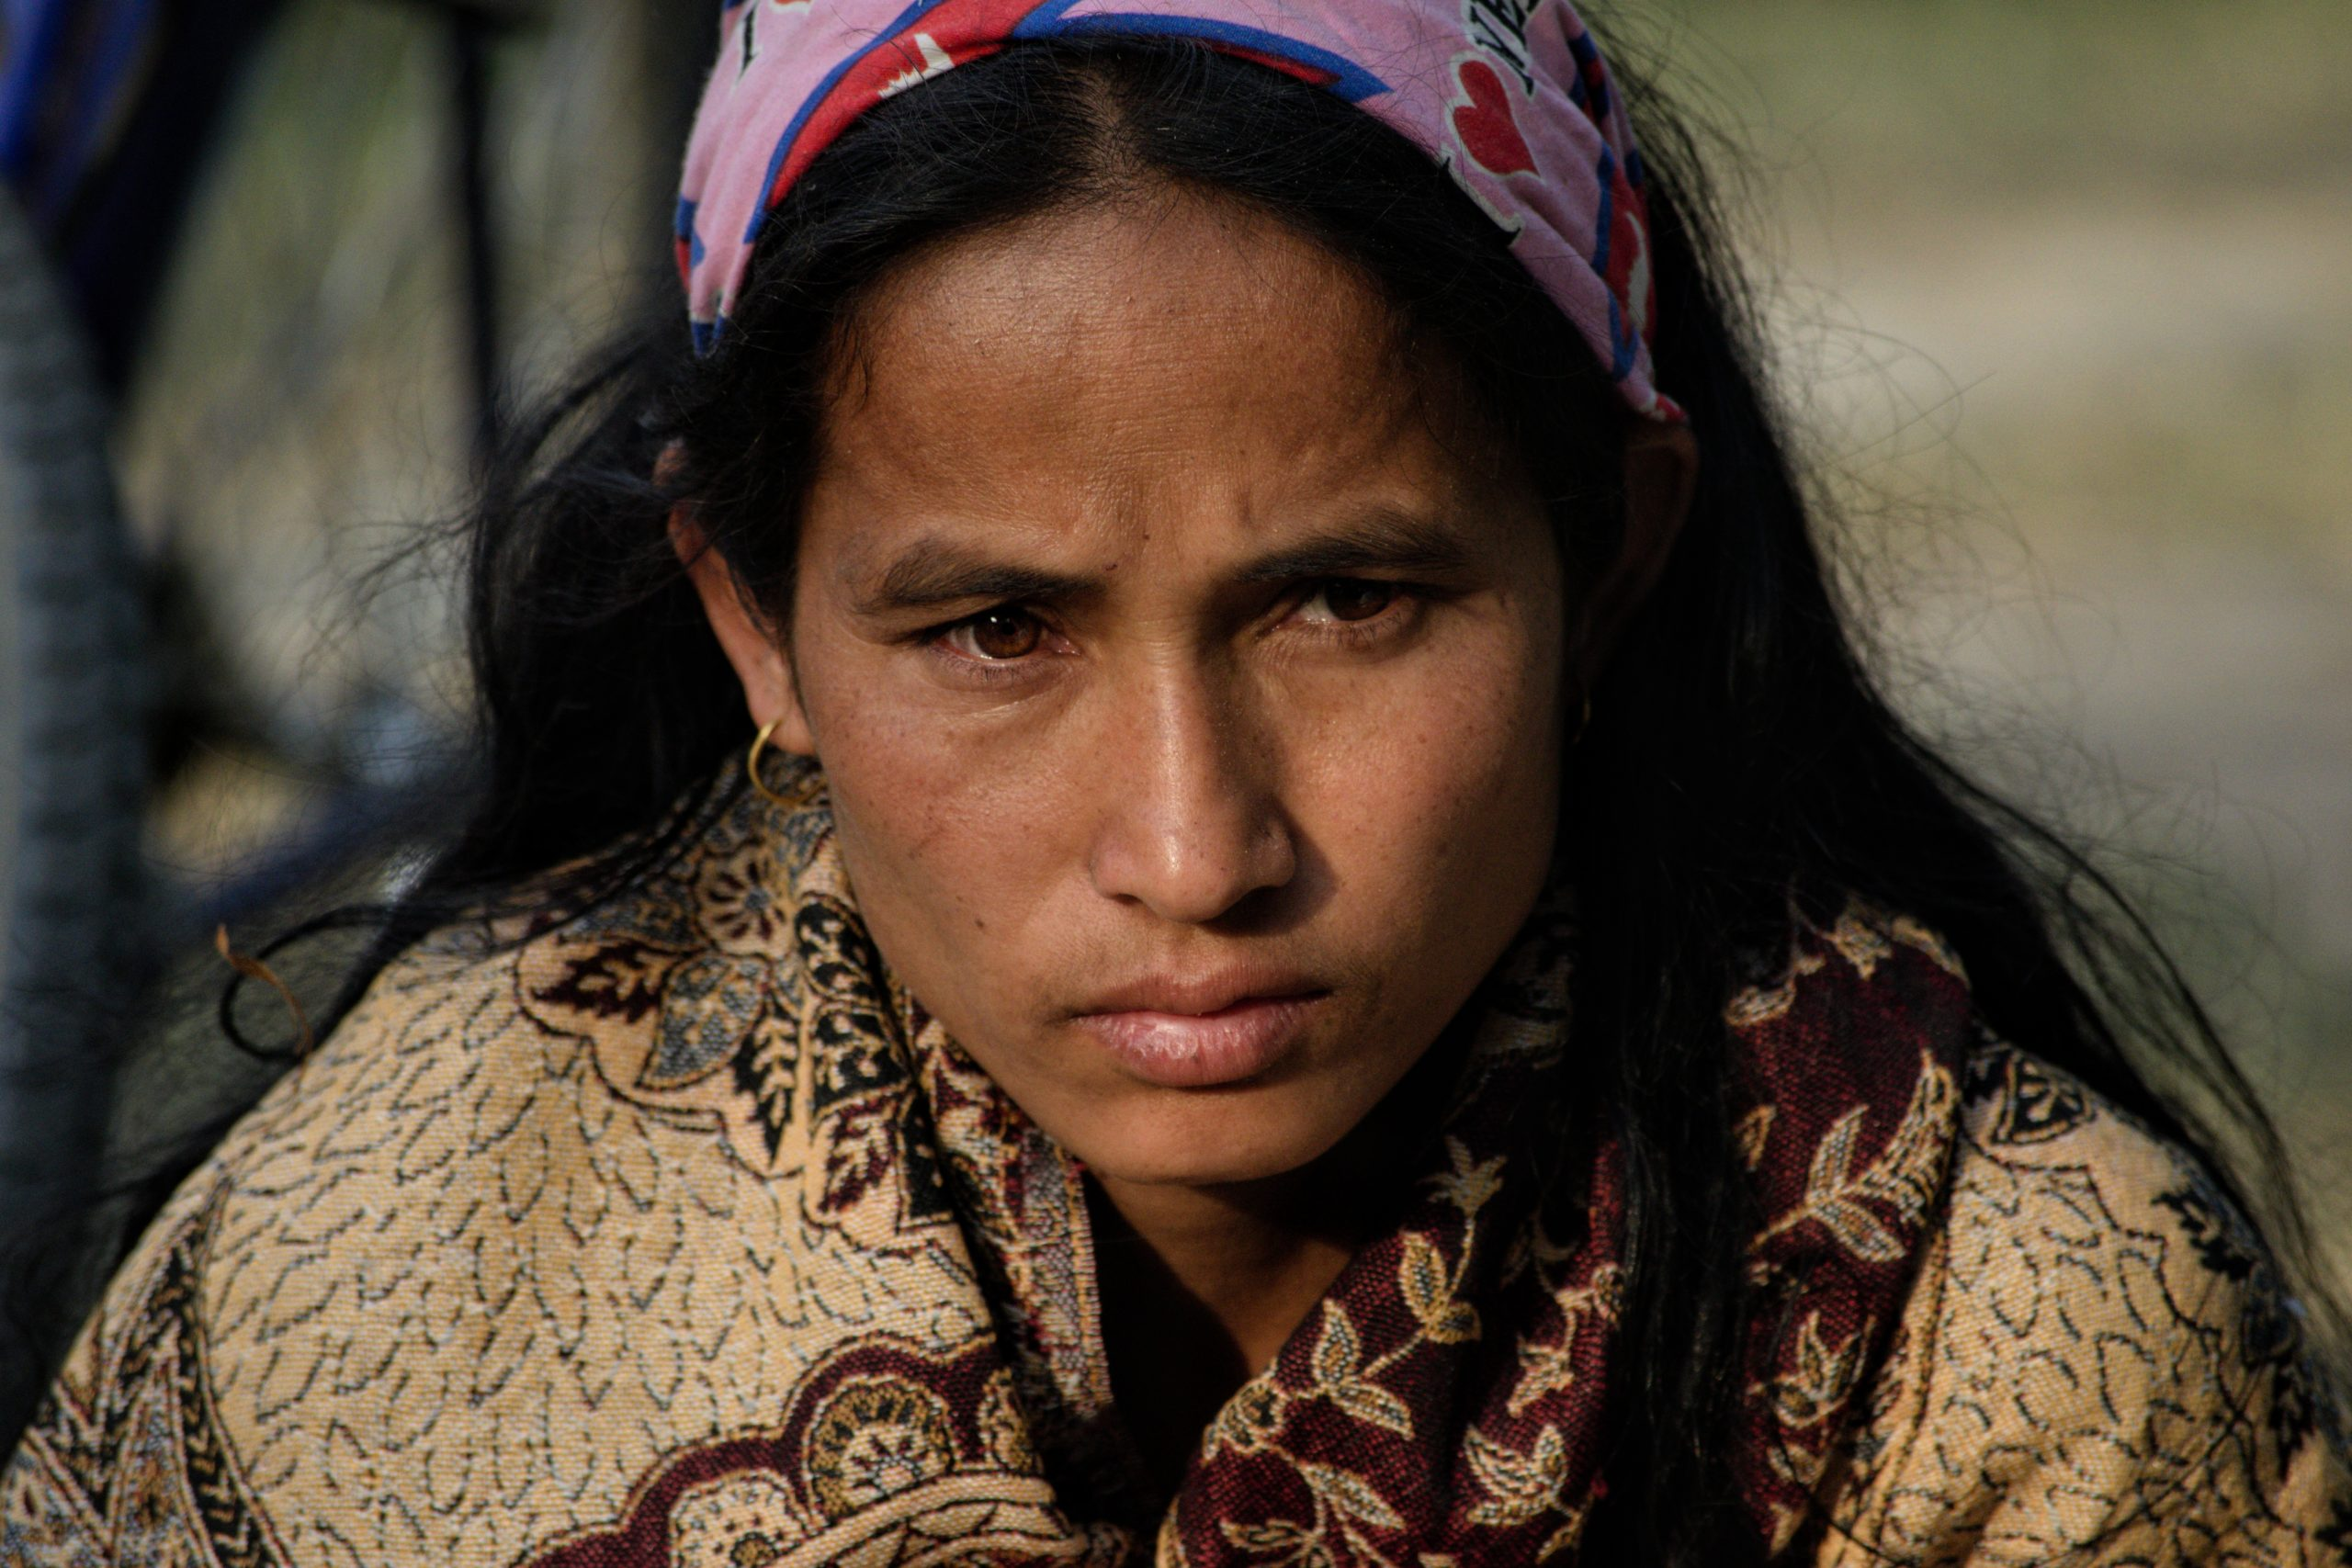 Bhawana Rawat, daughter-in-law of Dalli Rawat, victim of a tiger attack in Bardia National Park, Nepal